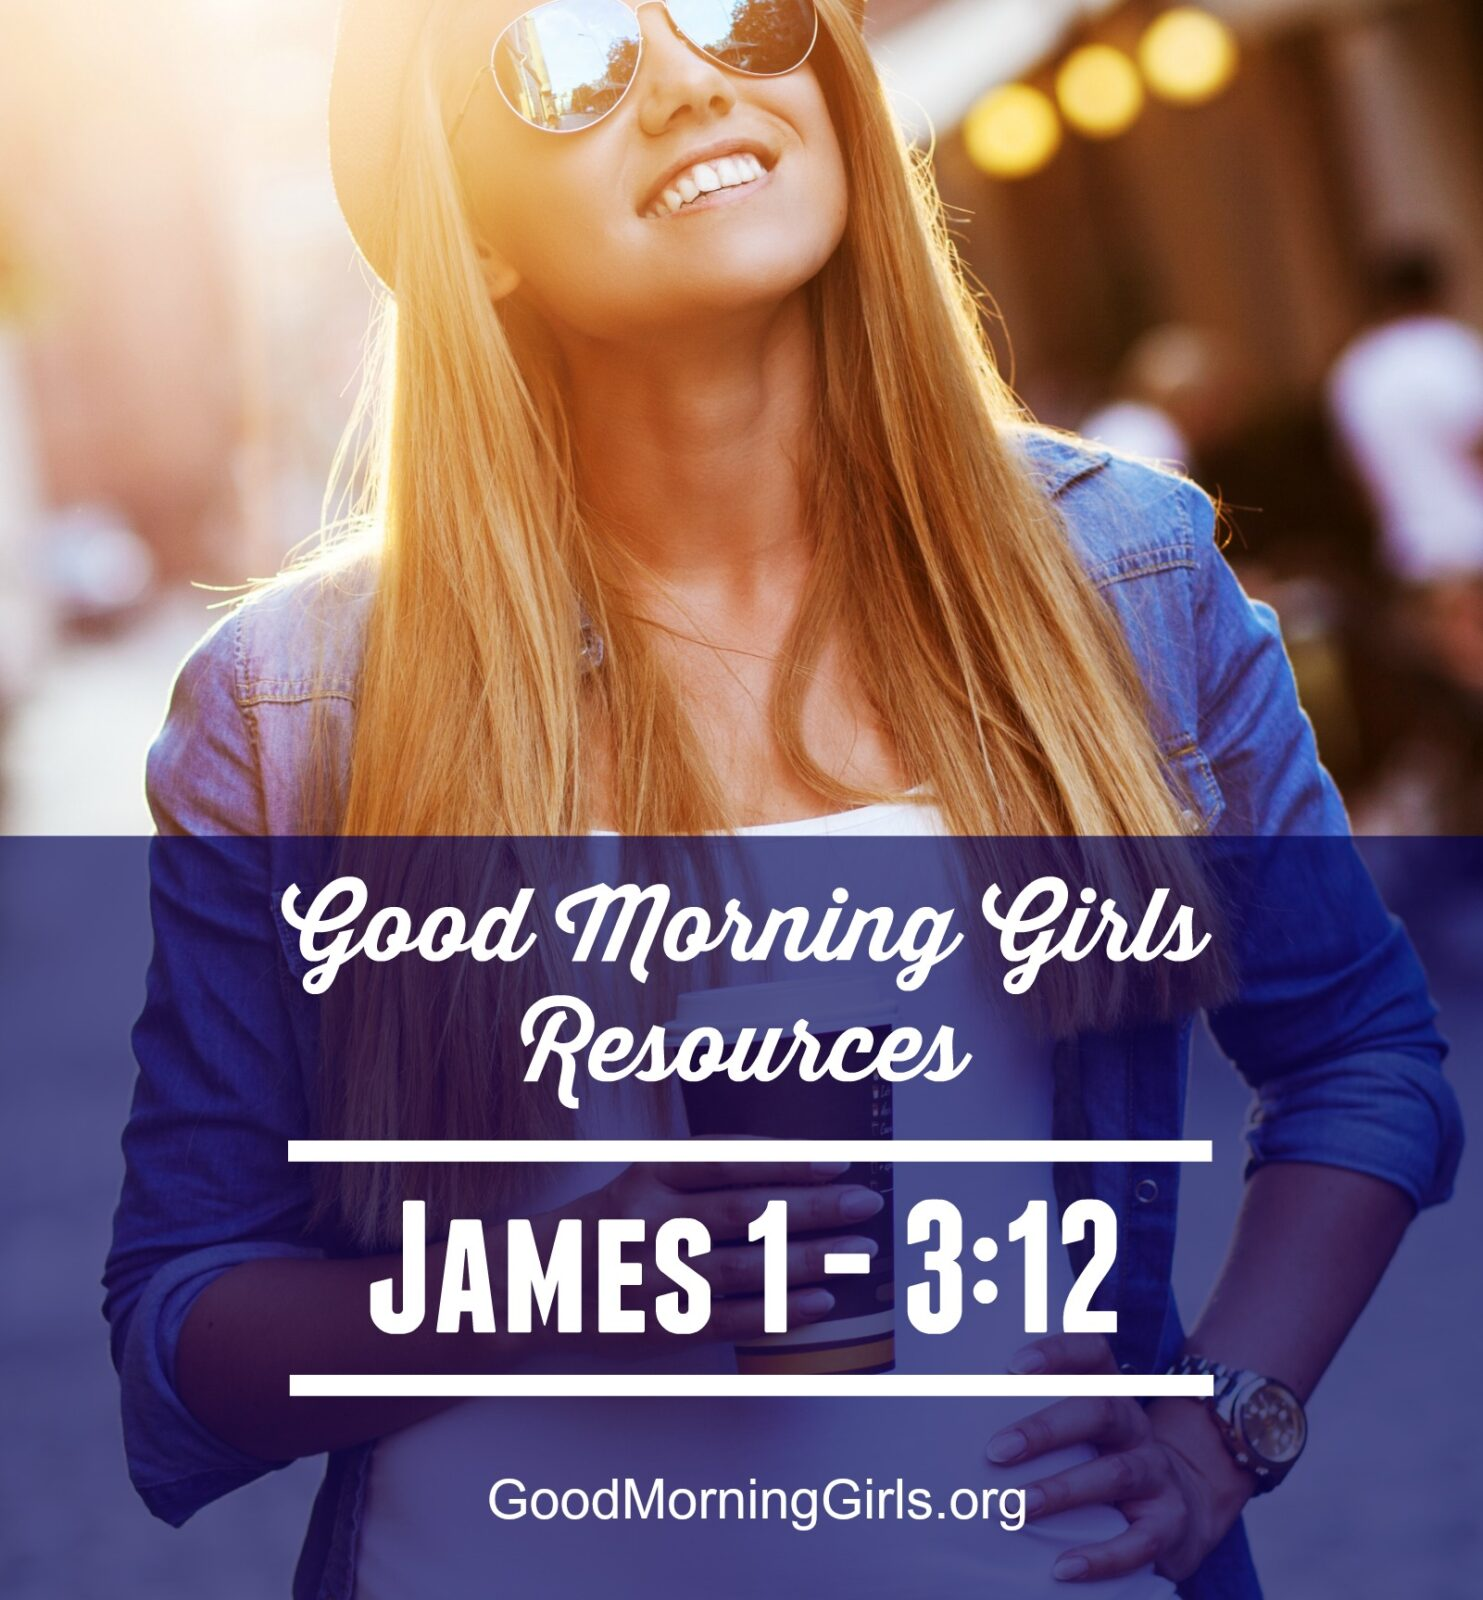 GMG Resources 1-3:12